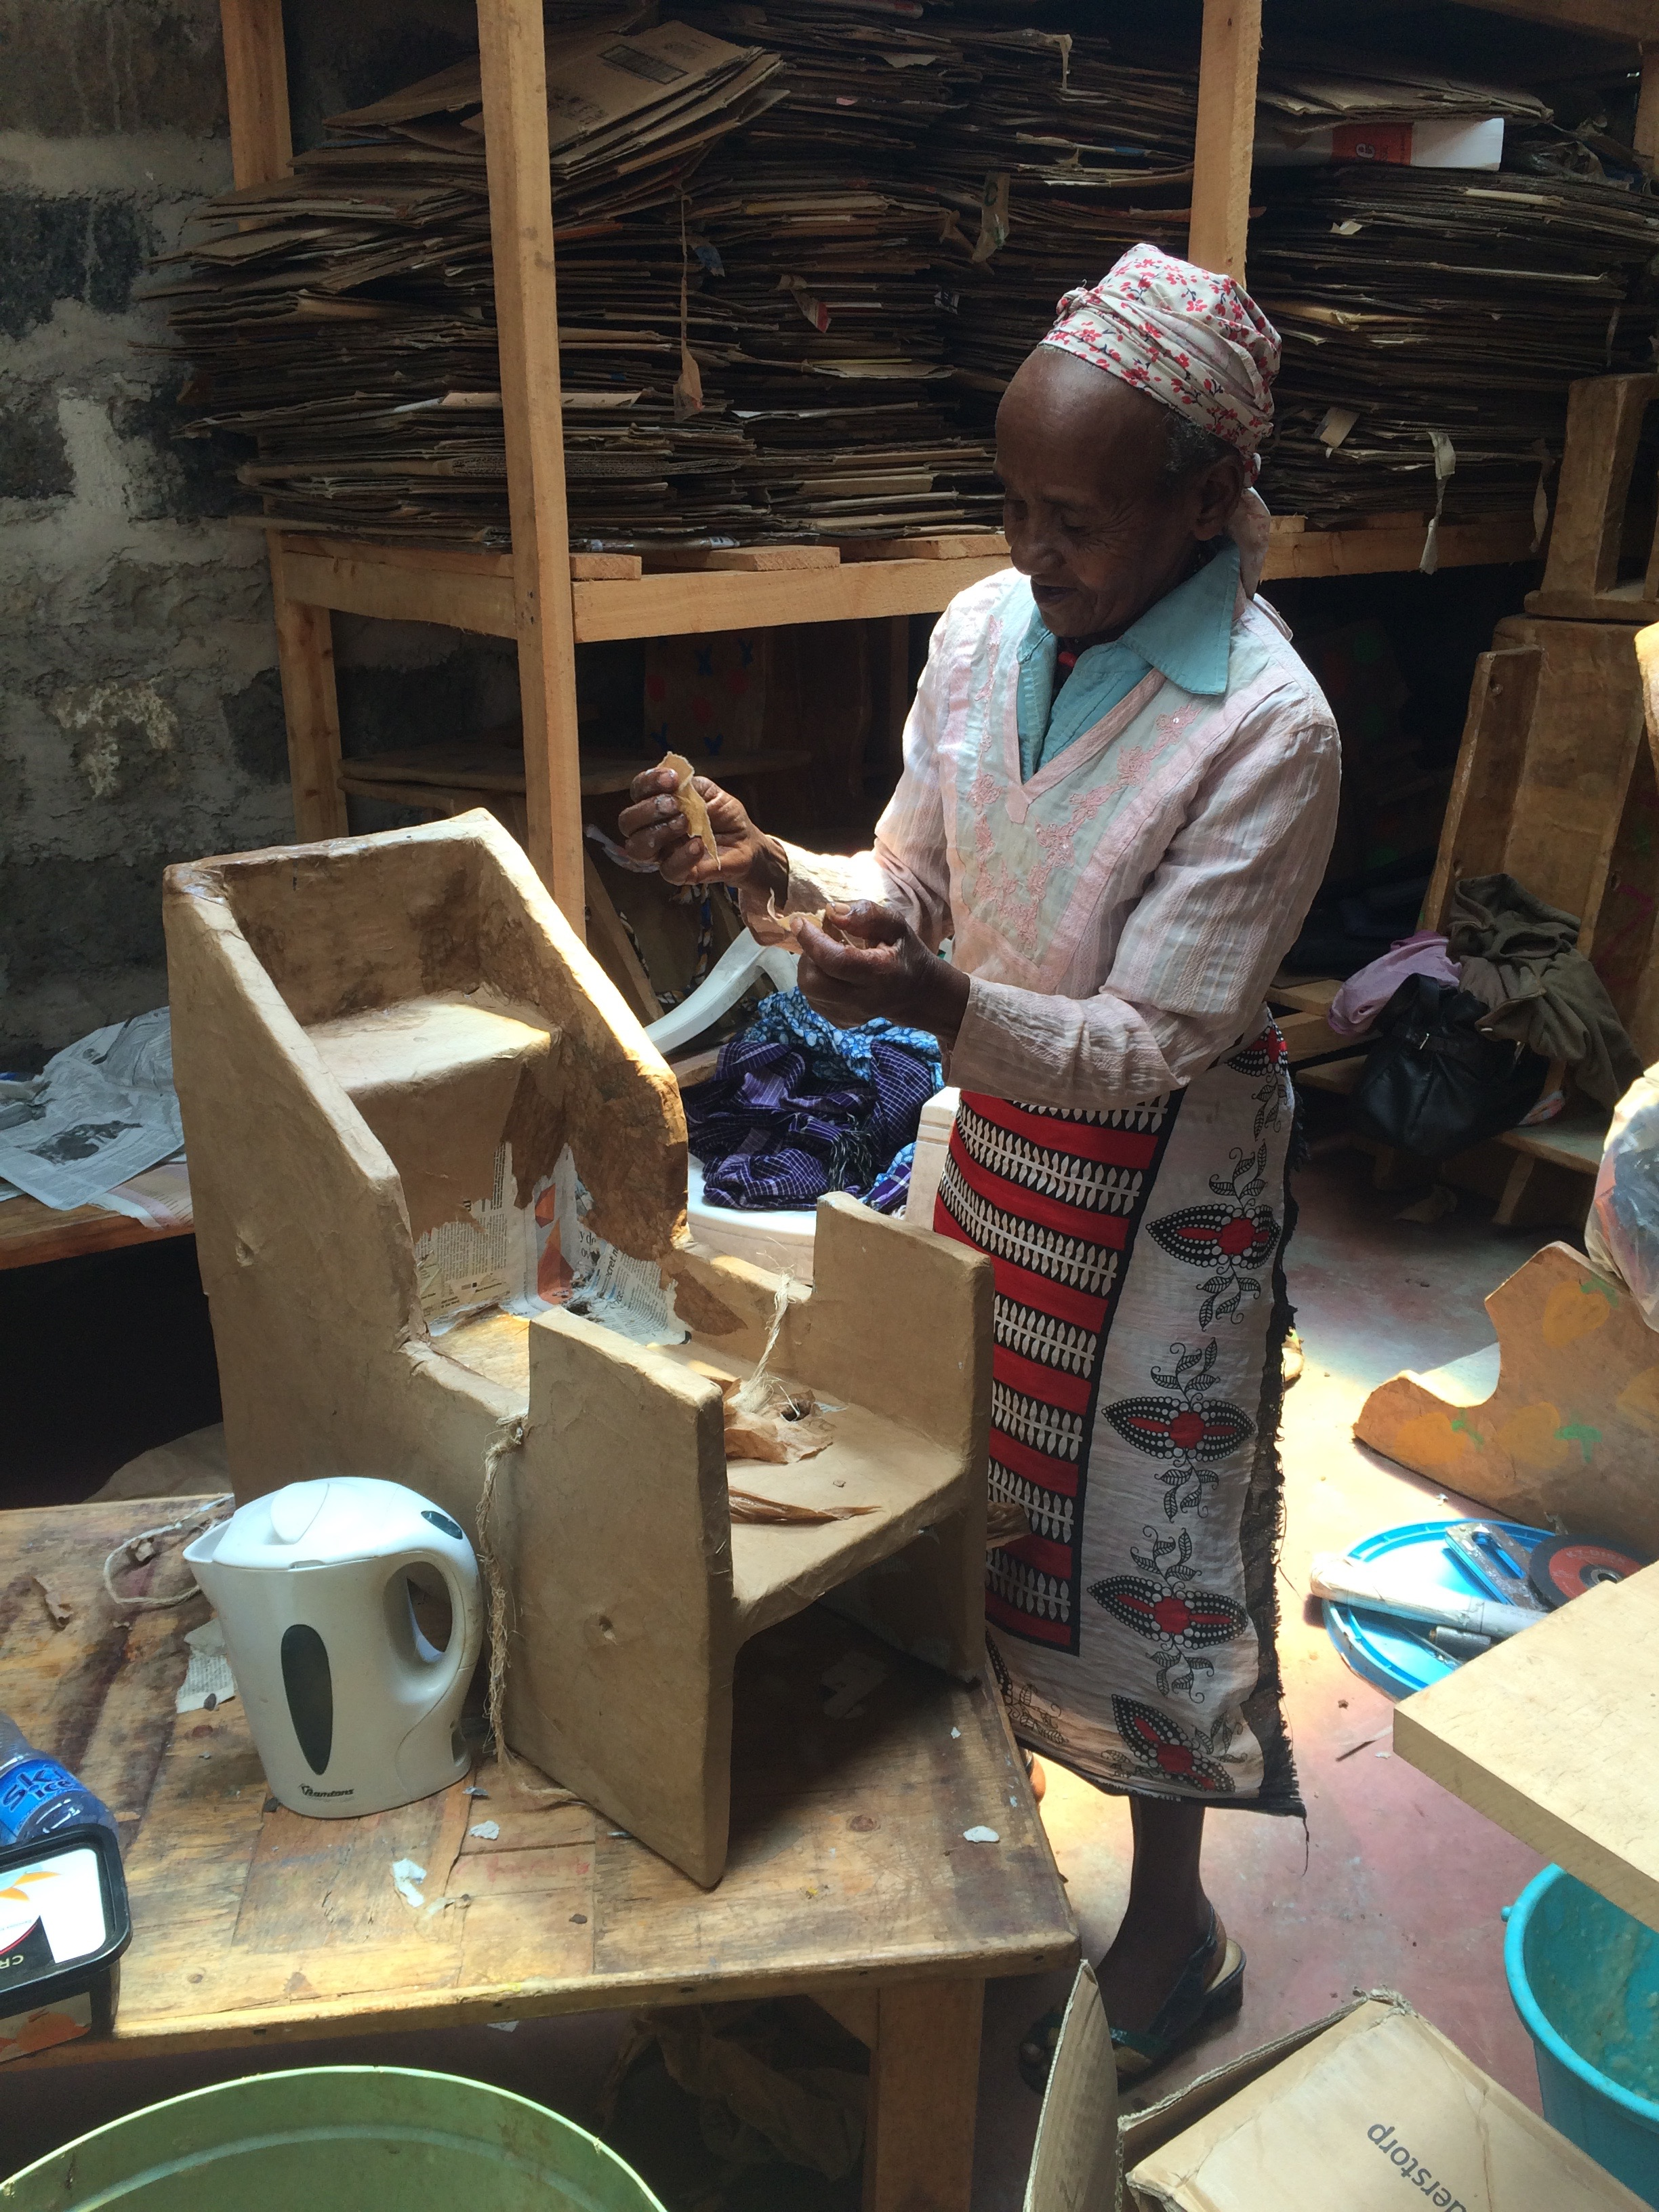 Granny Munene, who is employed at the SanctuaryArtists workshop, building one of the assistive cardboard chairs.